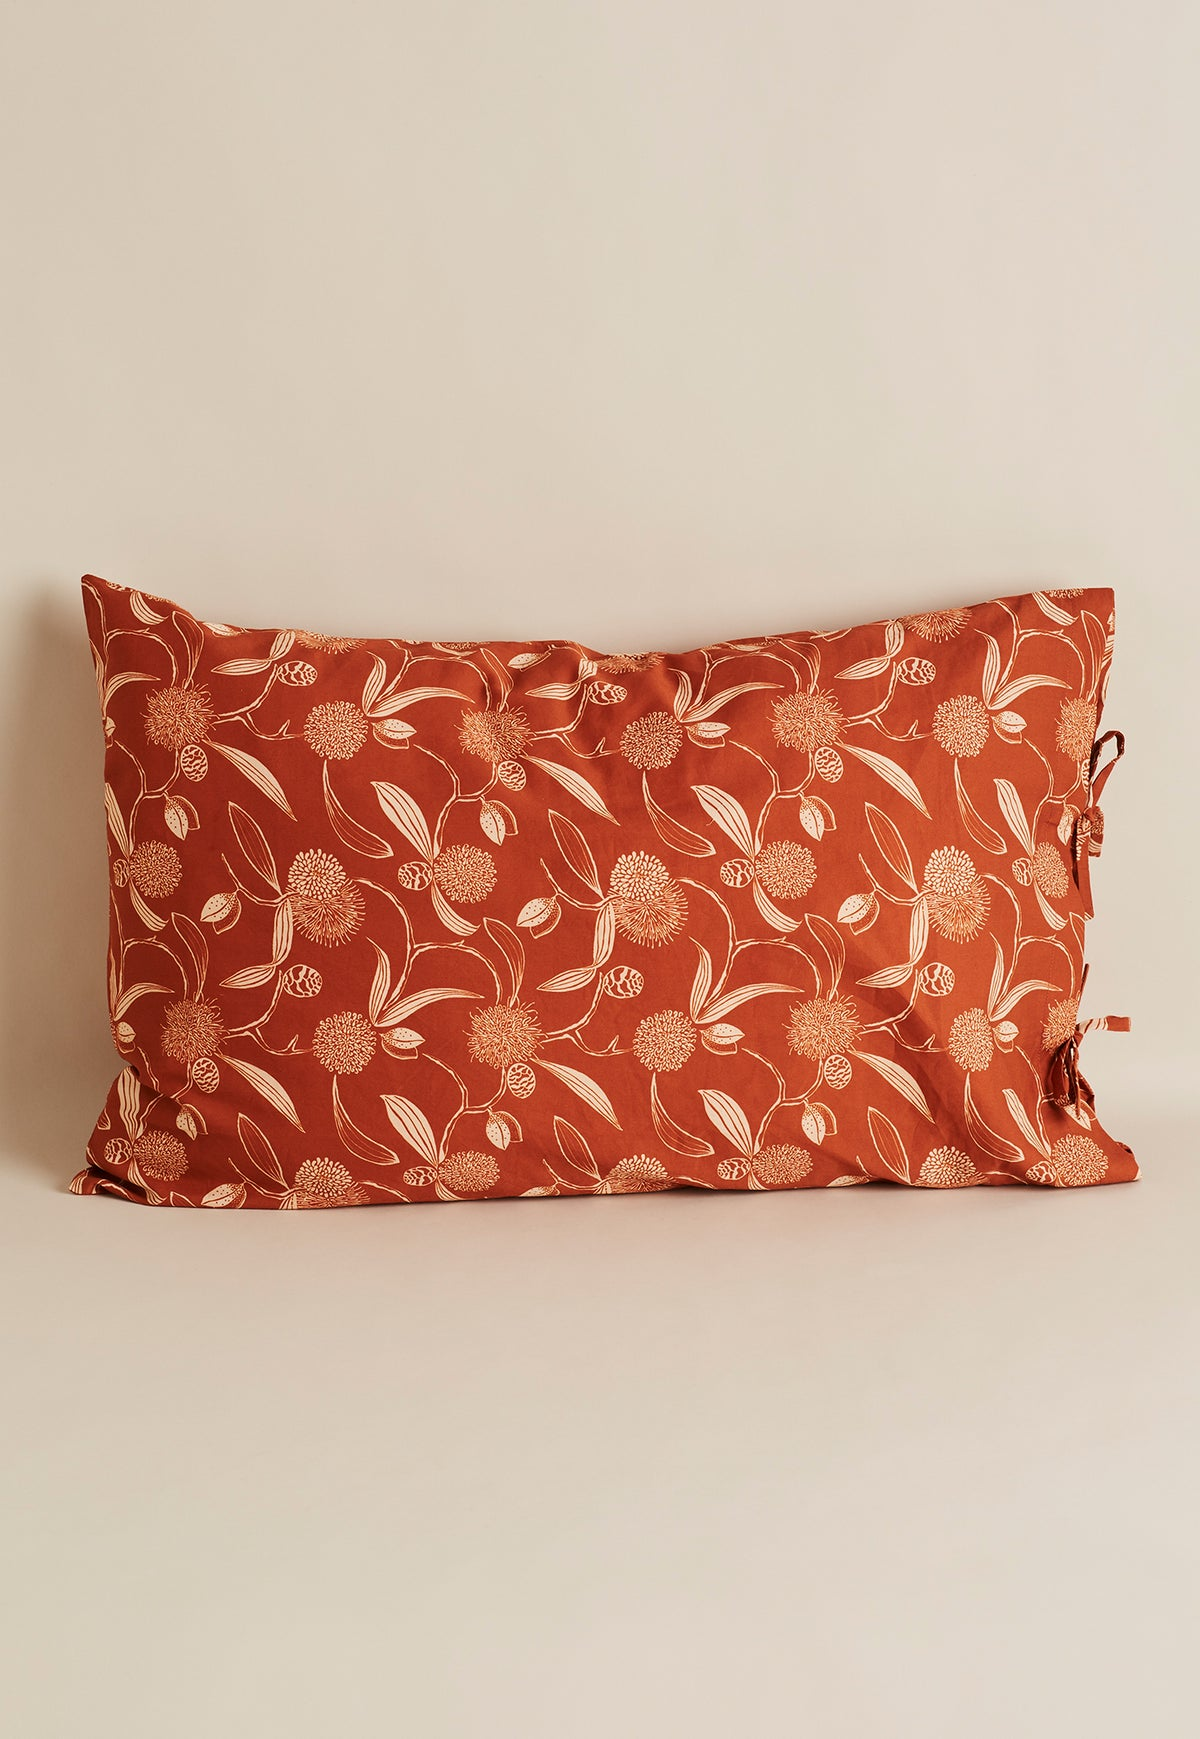 Pillow Case - Hakea Floral Ochre